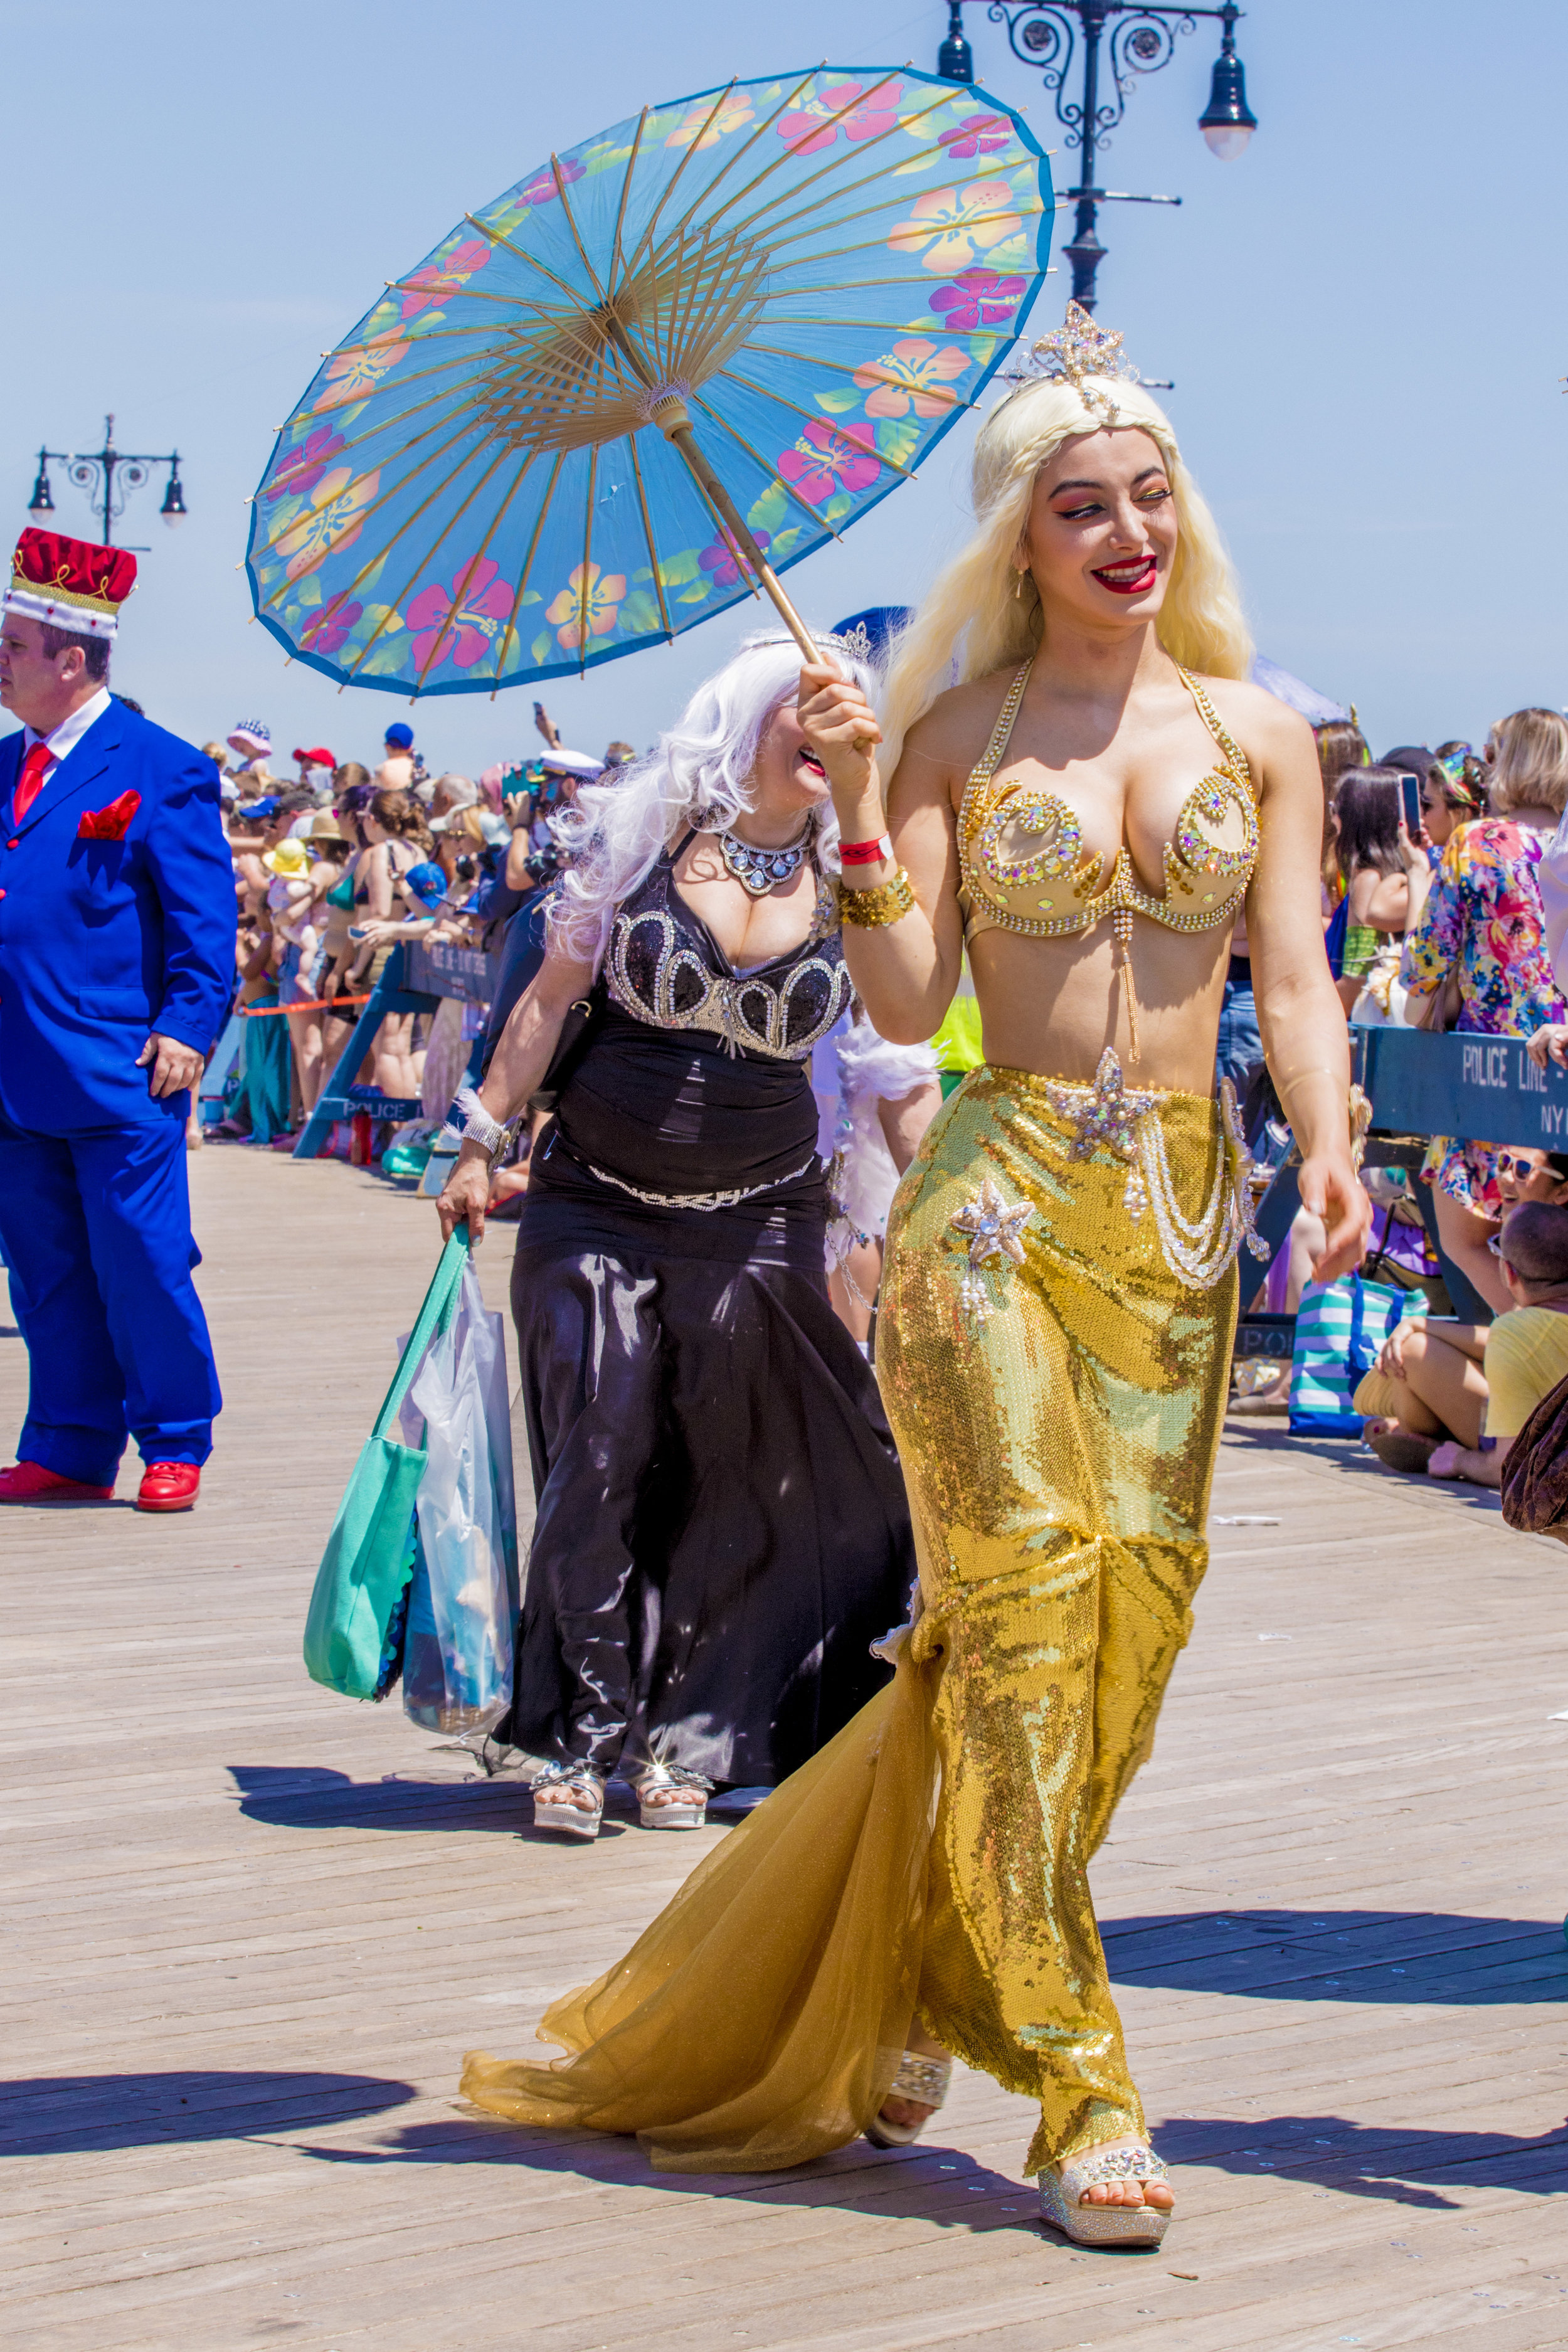 MermaidParade2018-3.jpg